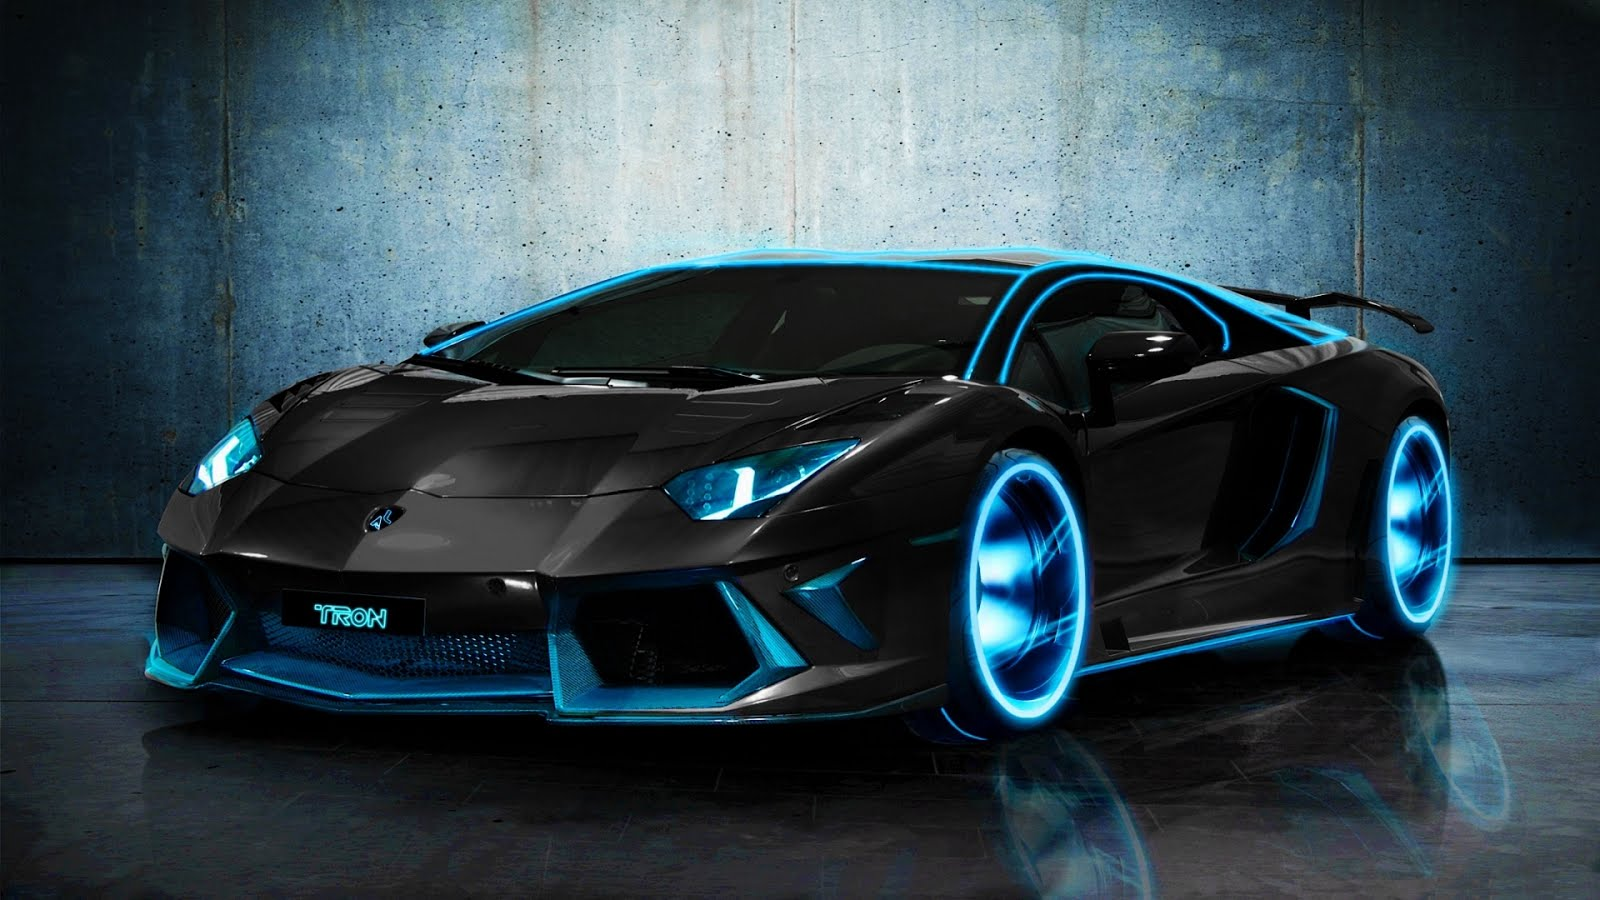 Wallpapers For Sick Car Wallpapers 1600x900